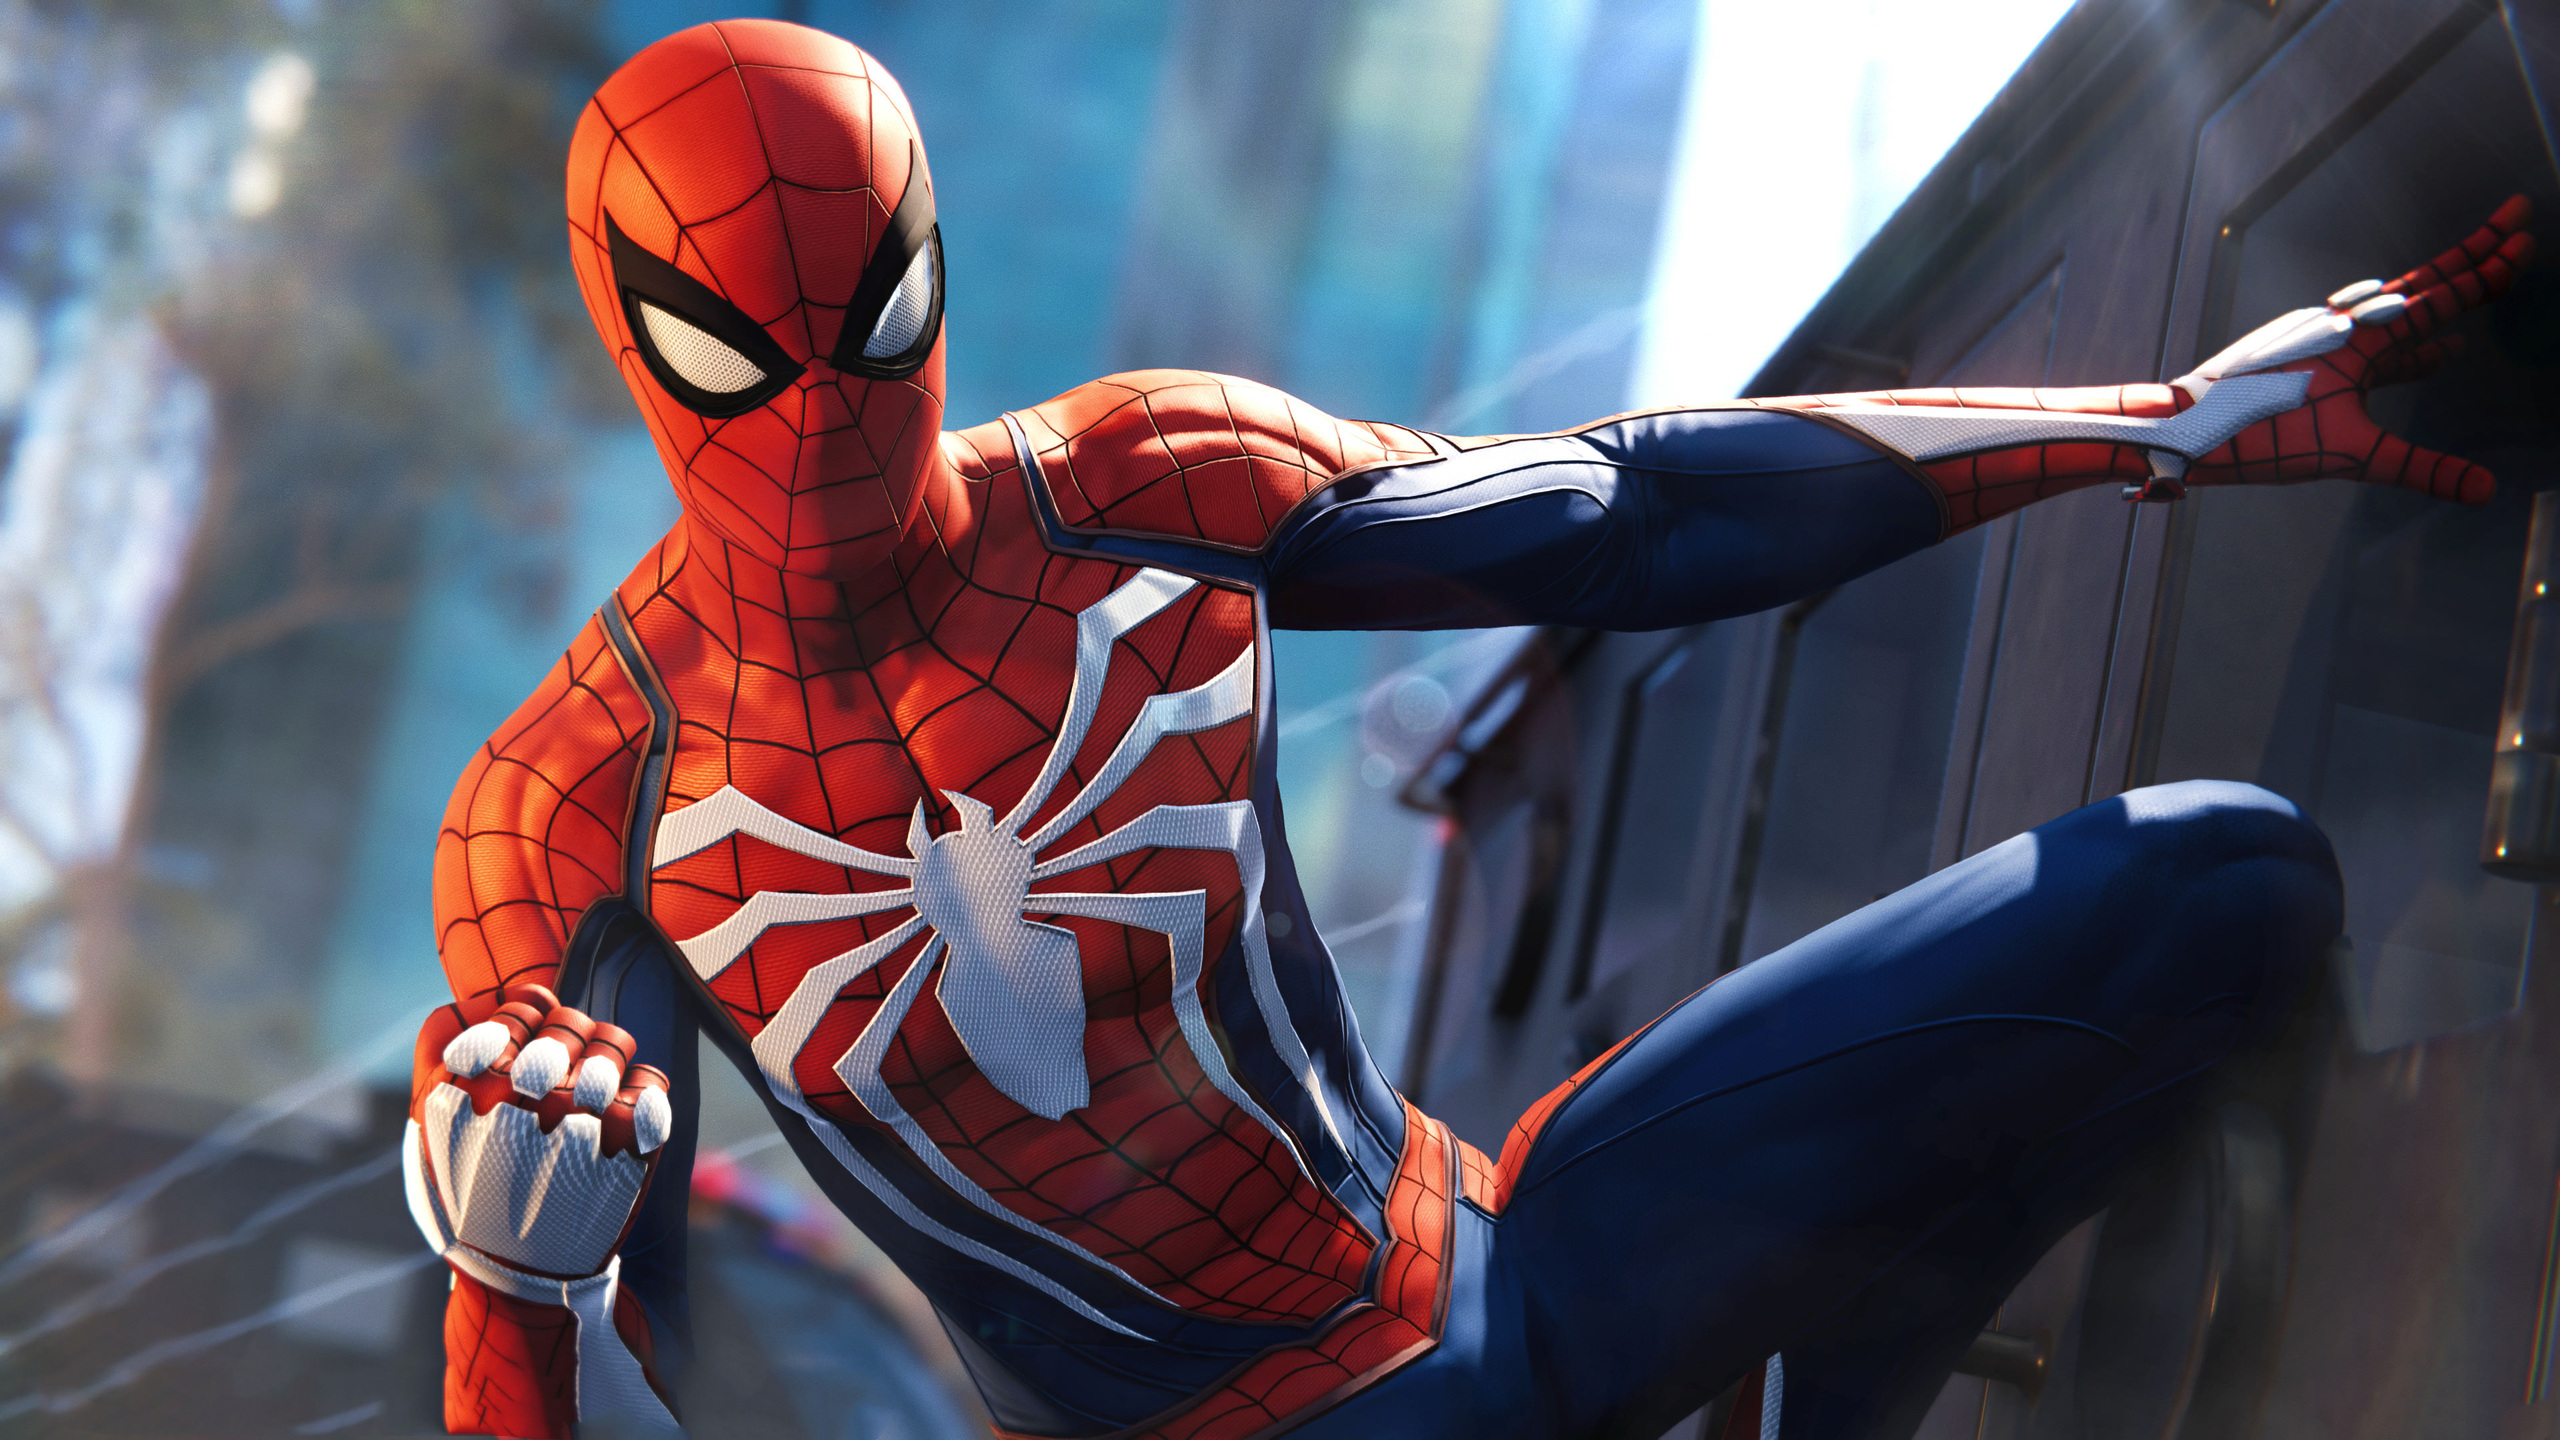 2560x1440 Spiderman PS4 Pro Video Game 4k 1440P Resolution ...